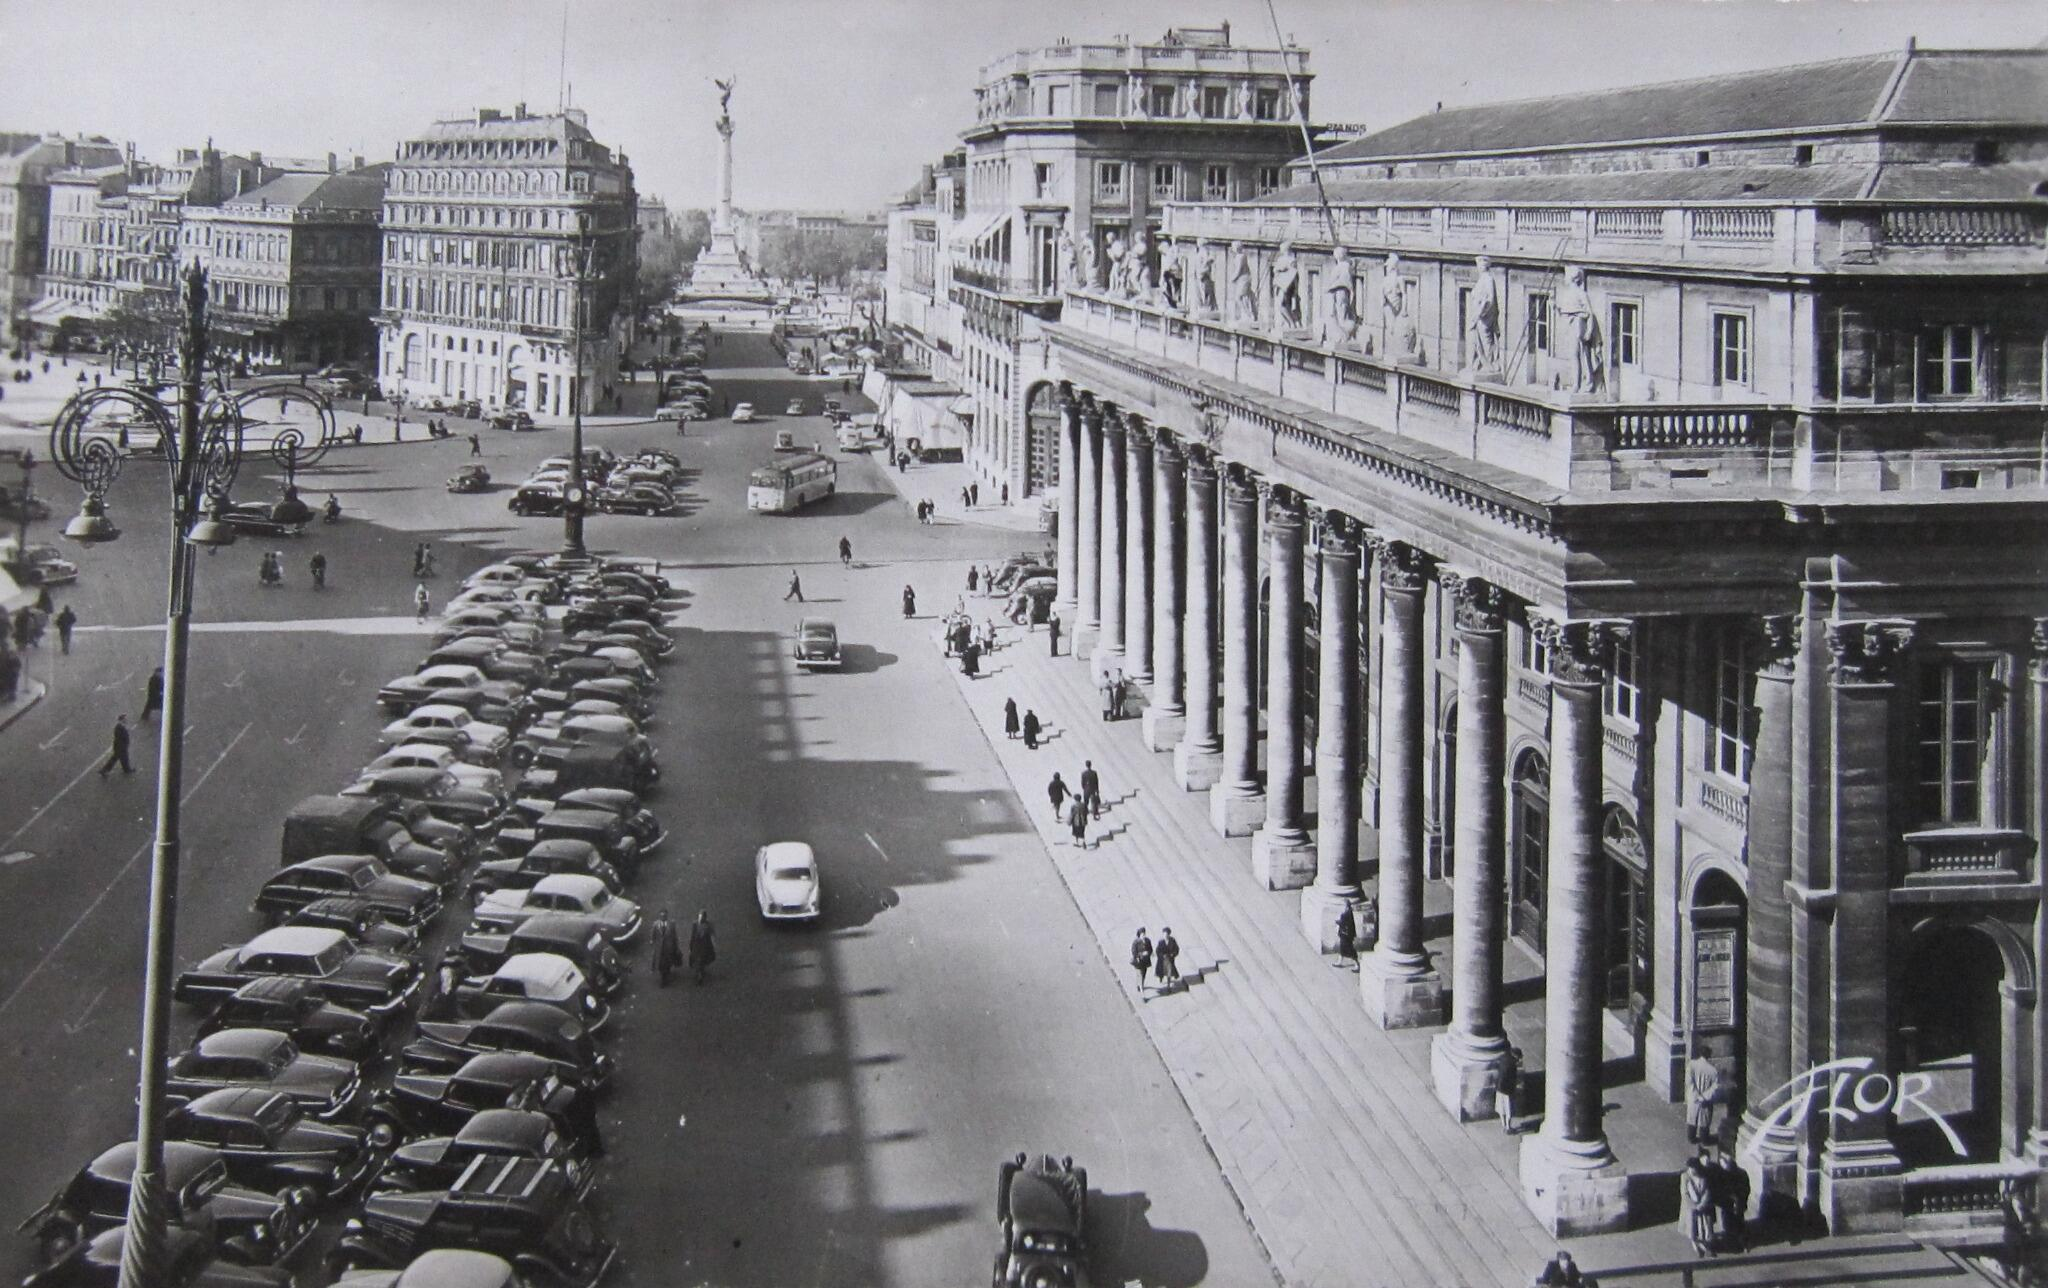 Lots of smart cars lined up outside the Grand Théâtre in @Bordeaux in line with clock/lamp-post which is still there! http://t.co/AvFa1utzfi